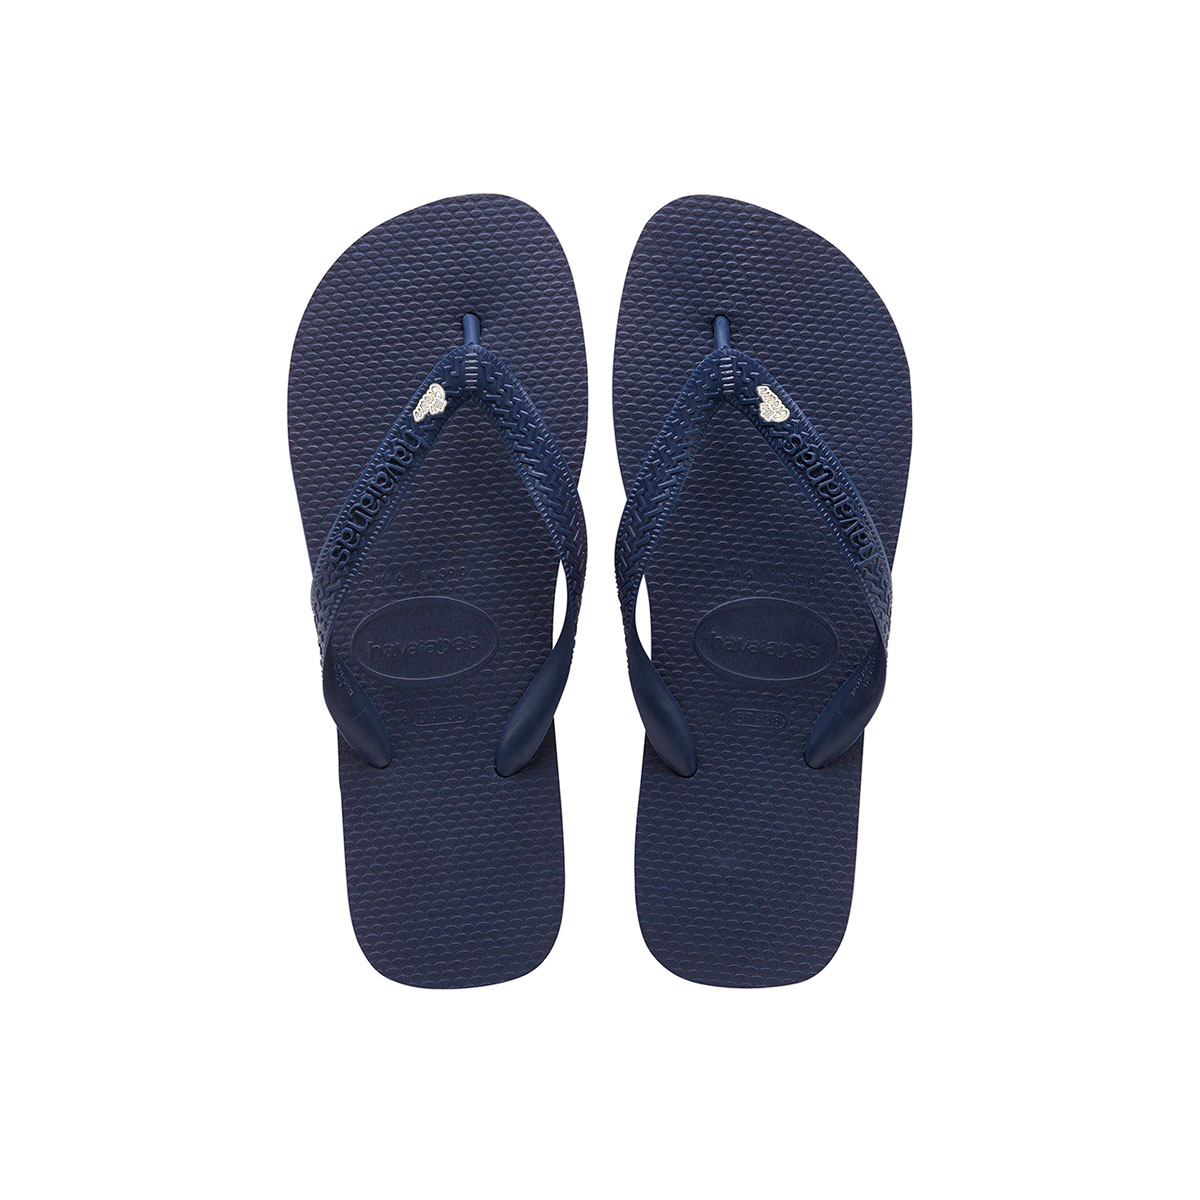 Silver & White The Groom Charm Havaianas Top Navy Wedding Gift